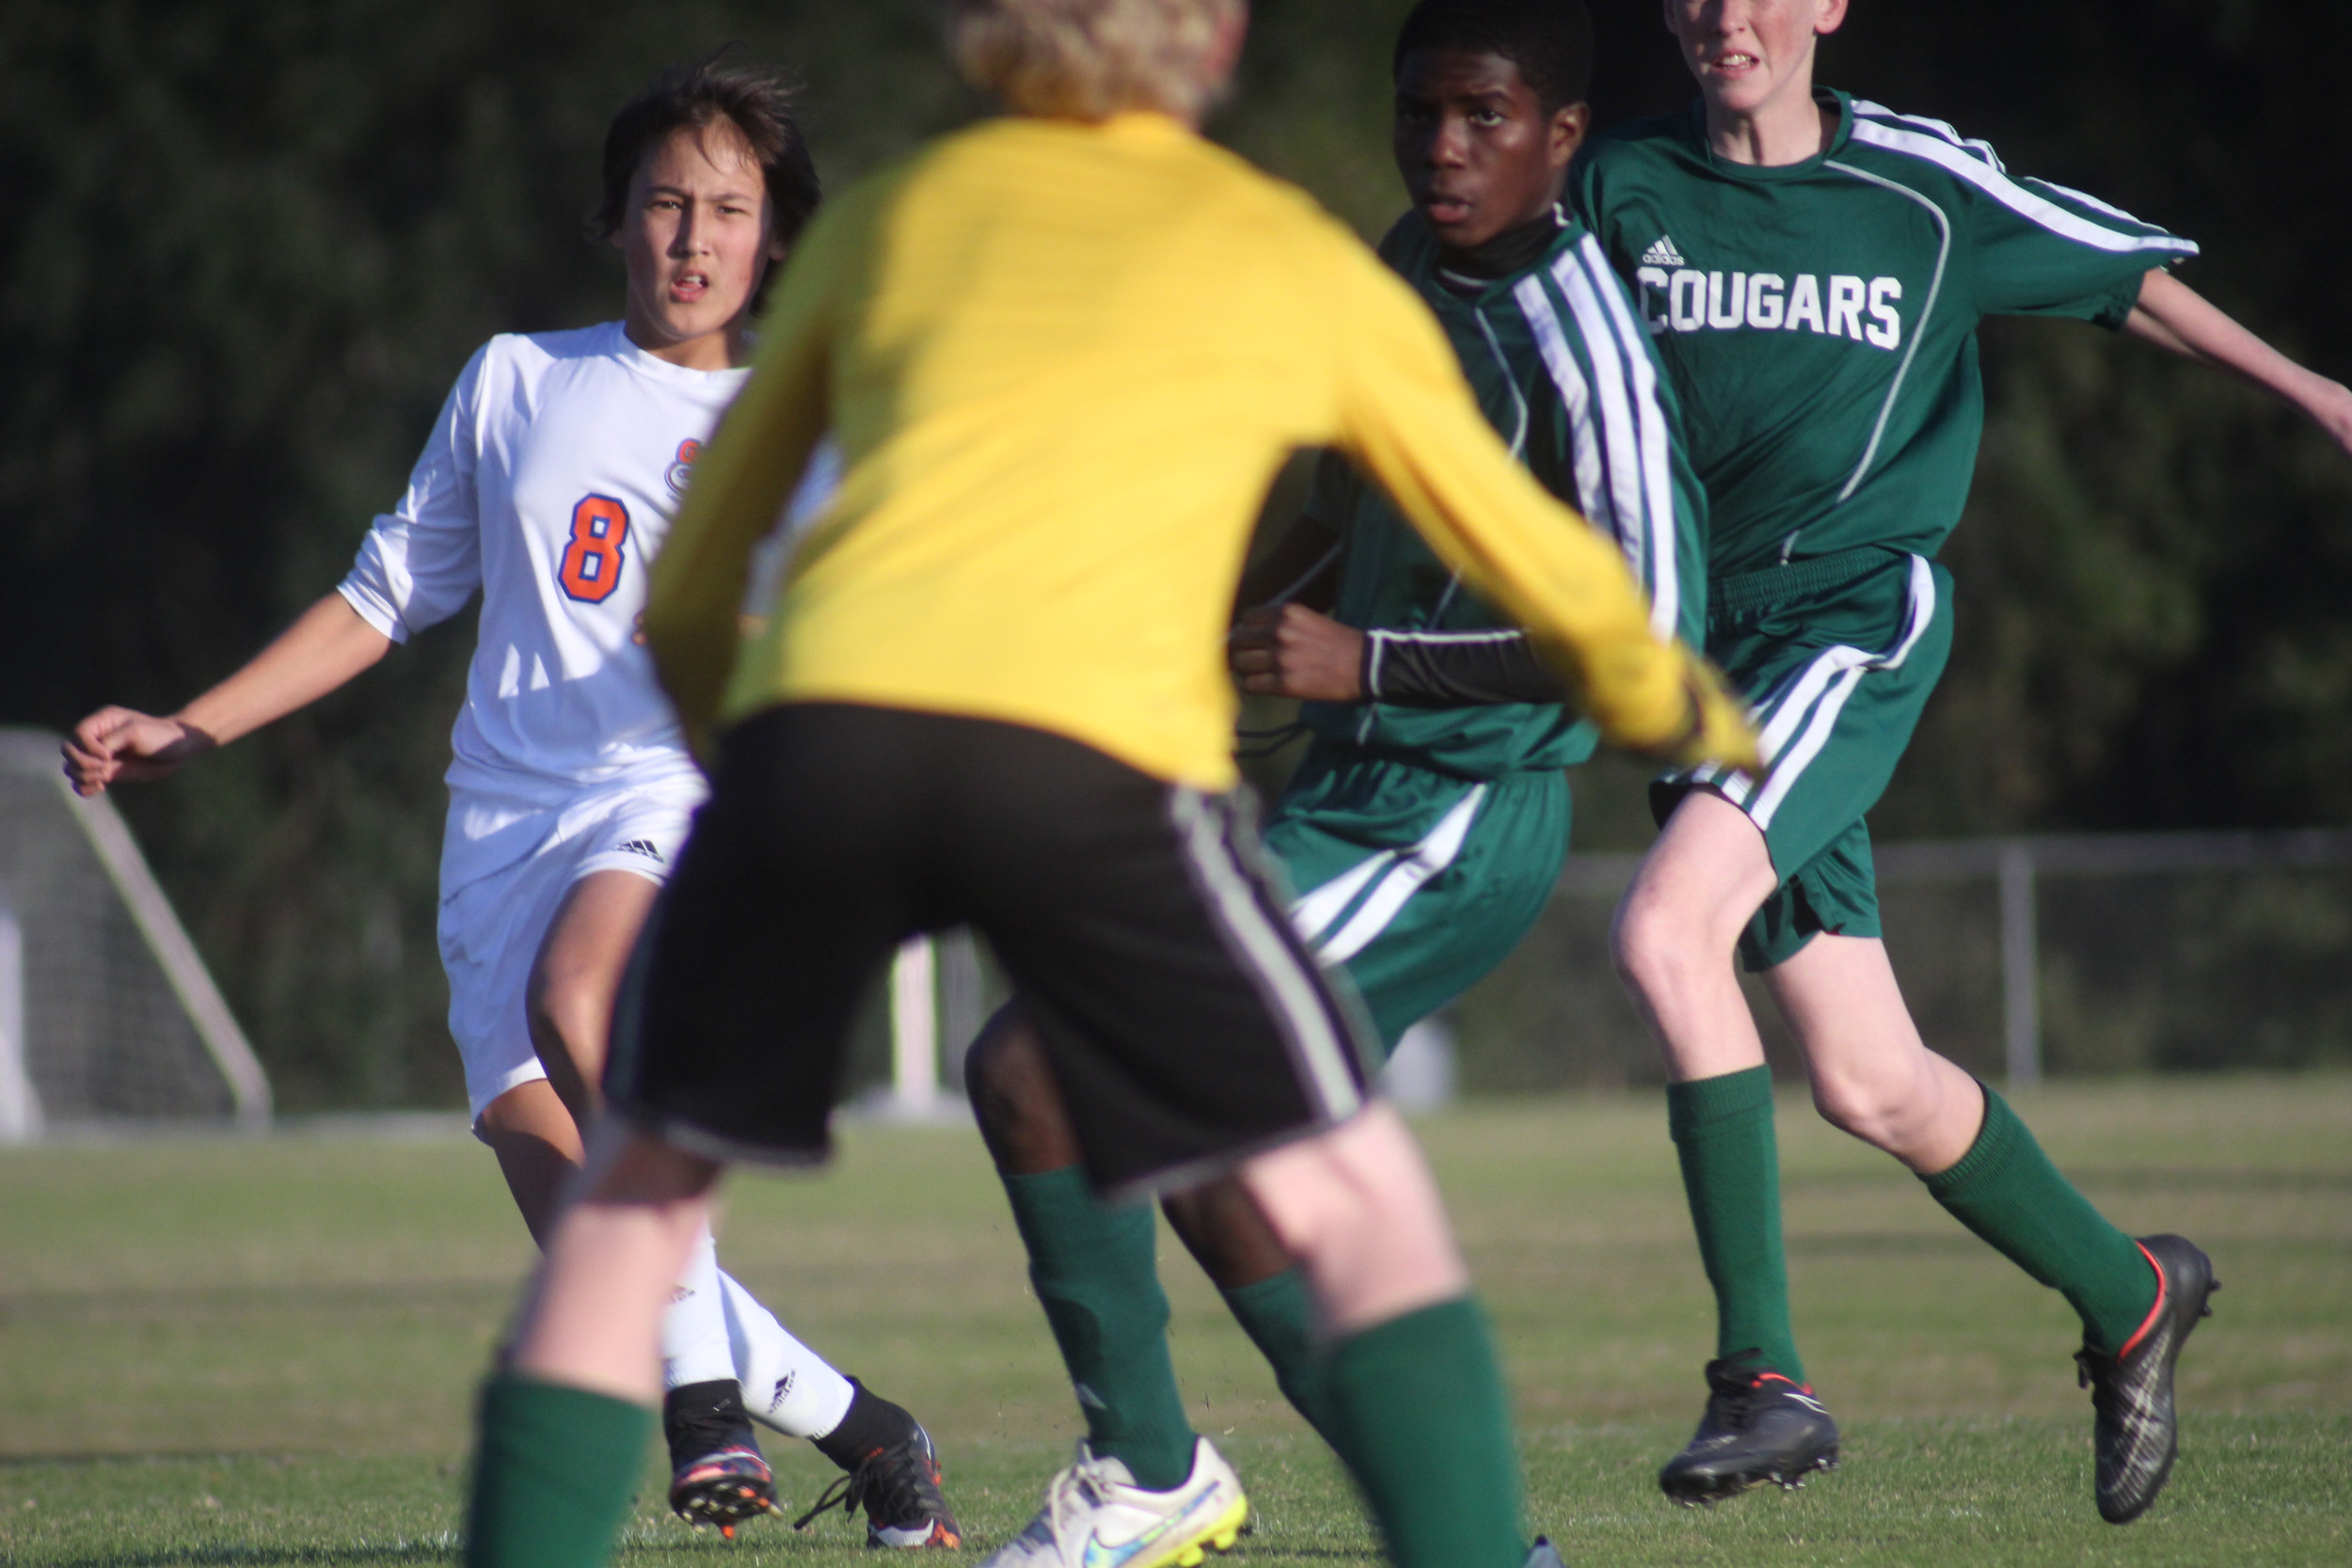 Lakeside Junior High won 8-0 over Green Cove Springs to advance to championship on January 28 against Lake Asbury. Shown is Trey Weeks shooting on Cougars in first half action.